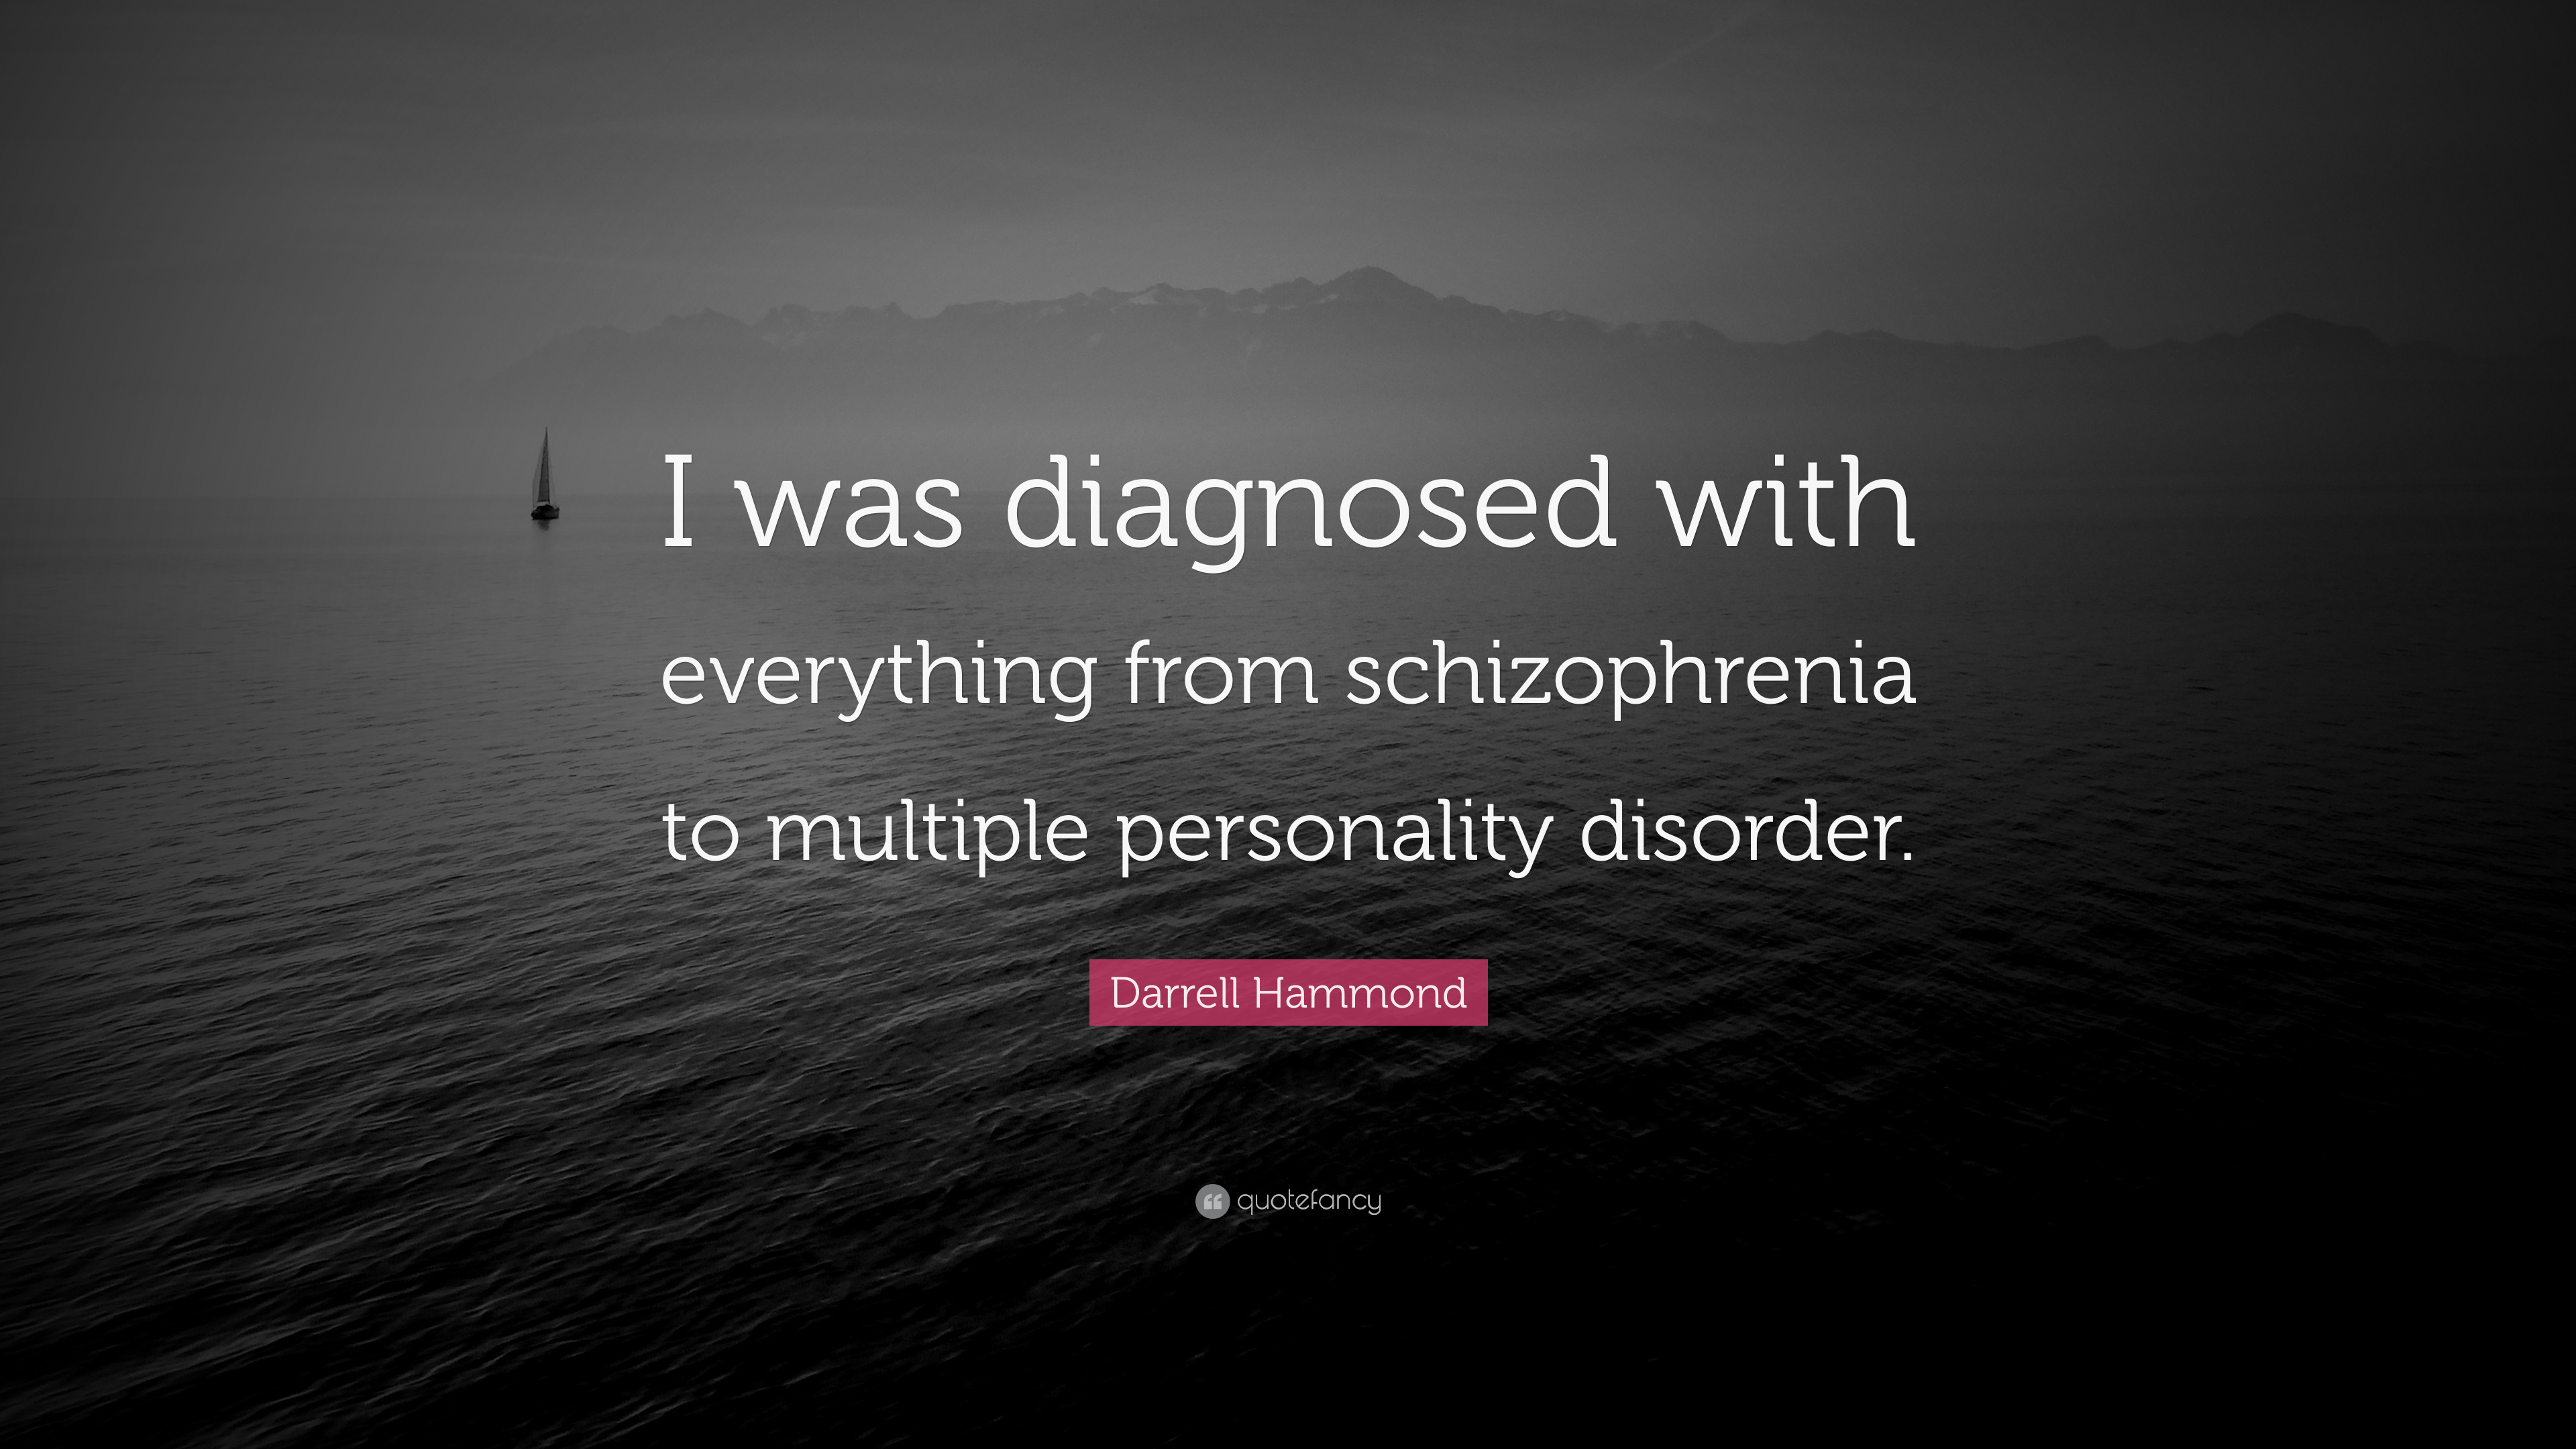 Darrell Hammond Quote I Was Diagnosed With Everything From Schizophrenia To Multiple Personality Disorder 7 Wallpapers Quotefancy